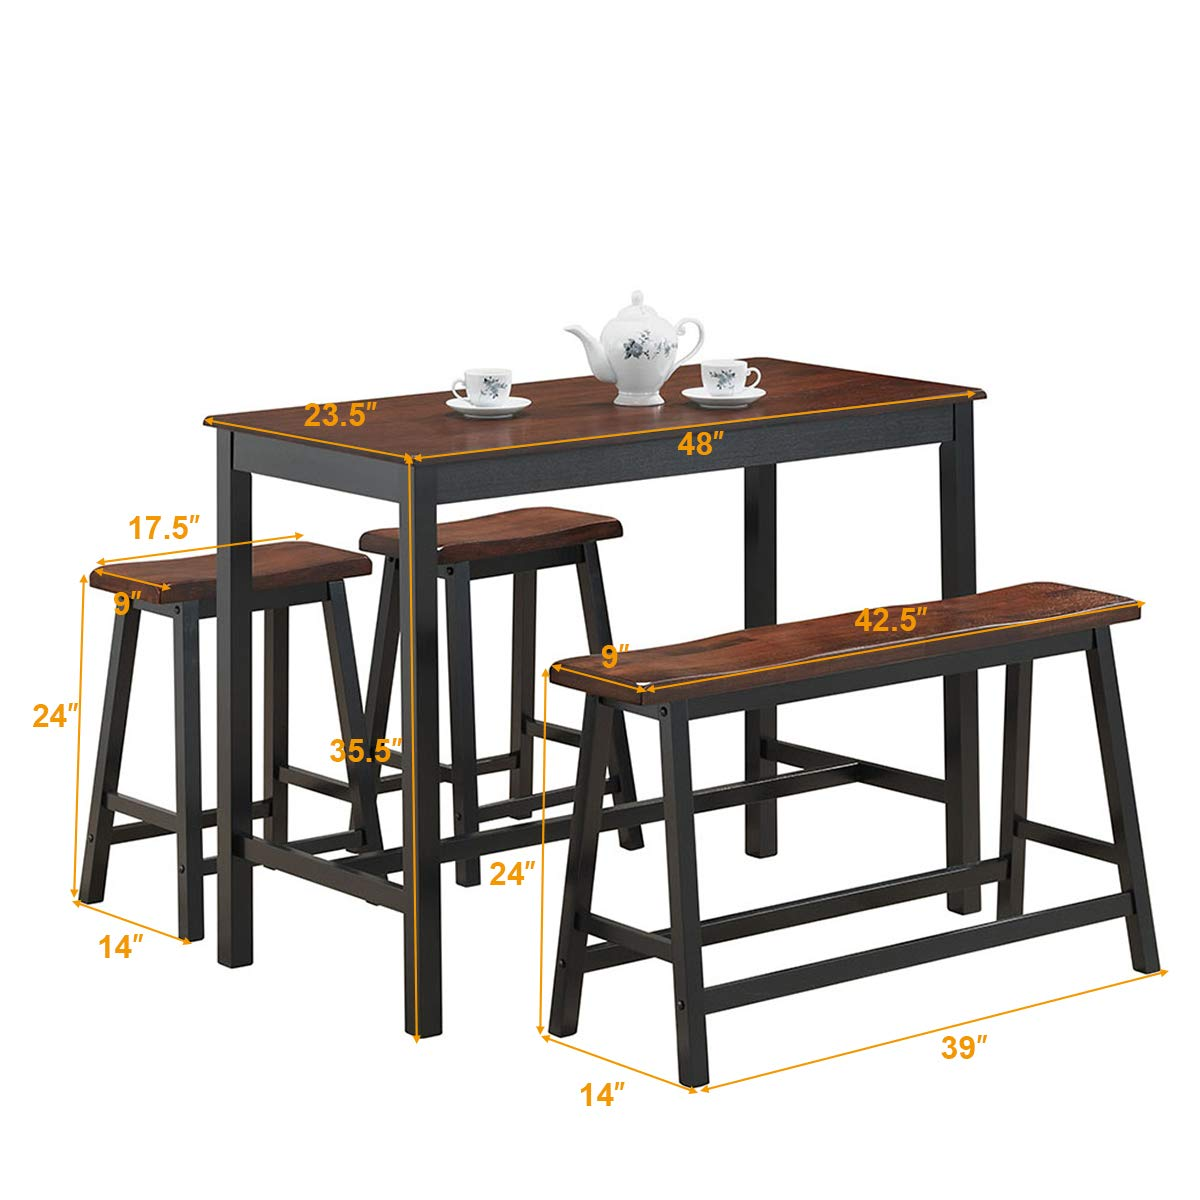 Costway 4pc counter height table set simple dining set modern style with one height bench and two saddle stools solid wood with foot pads home kitchen